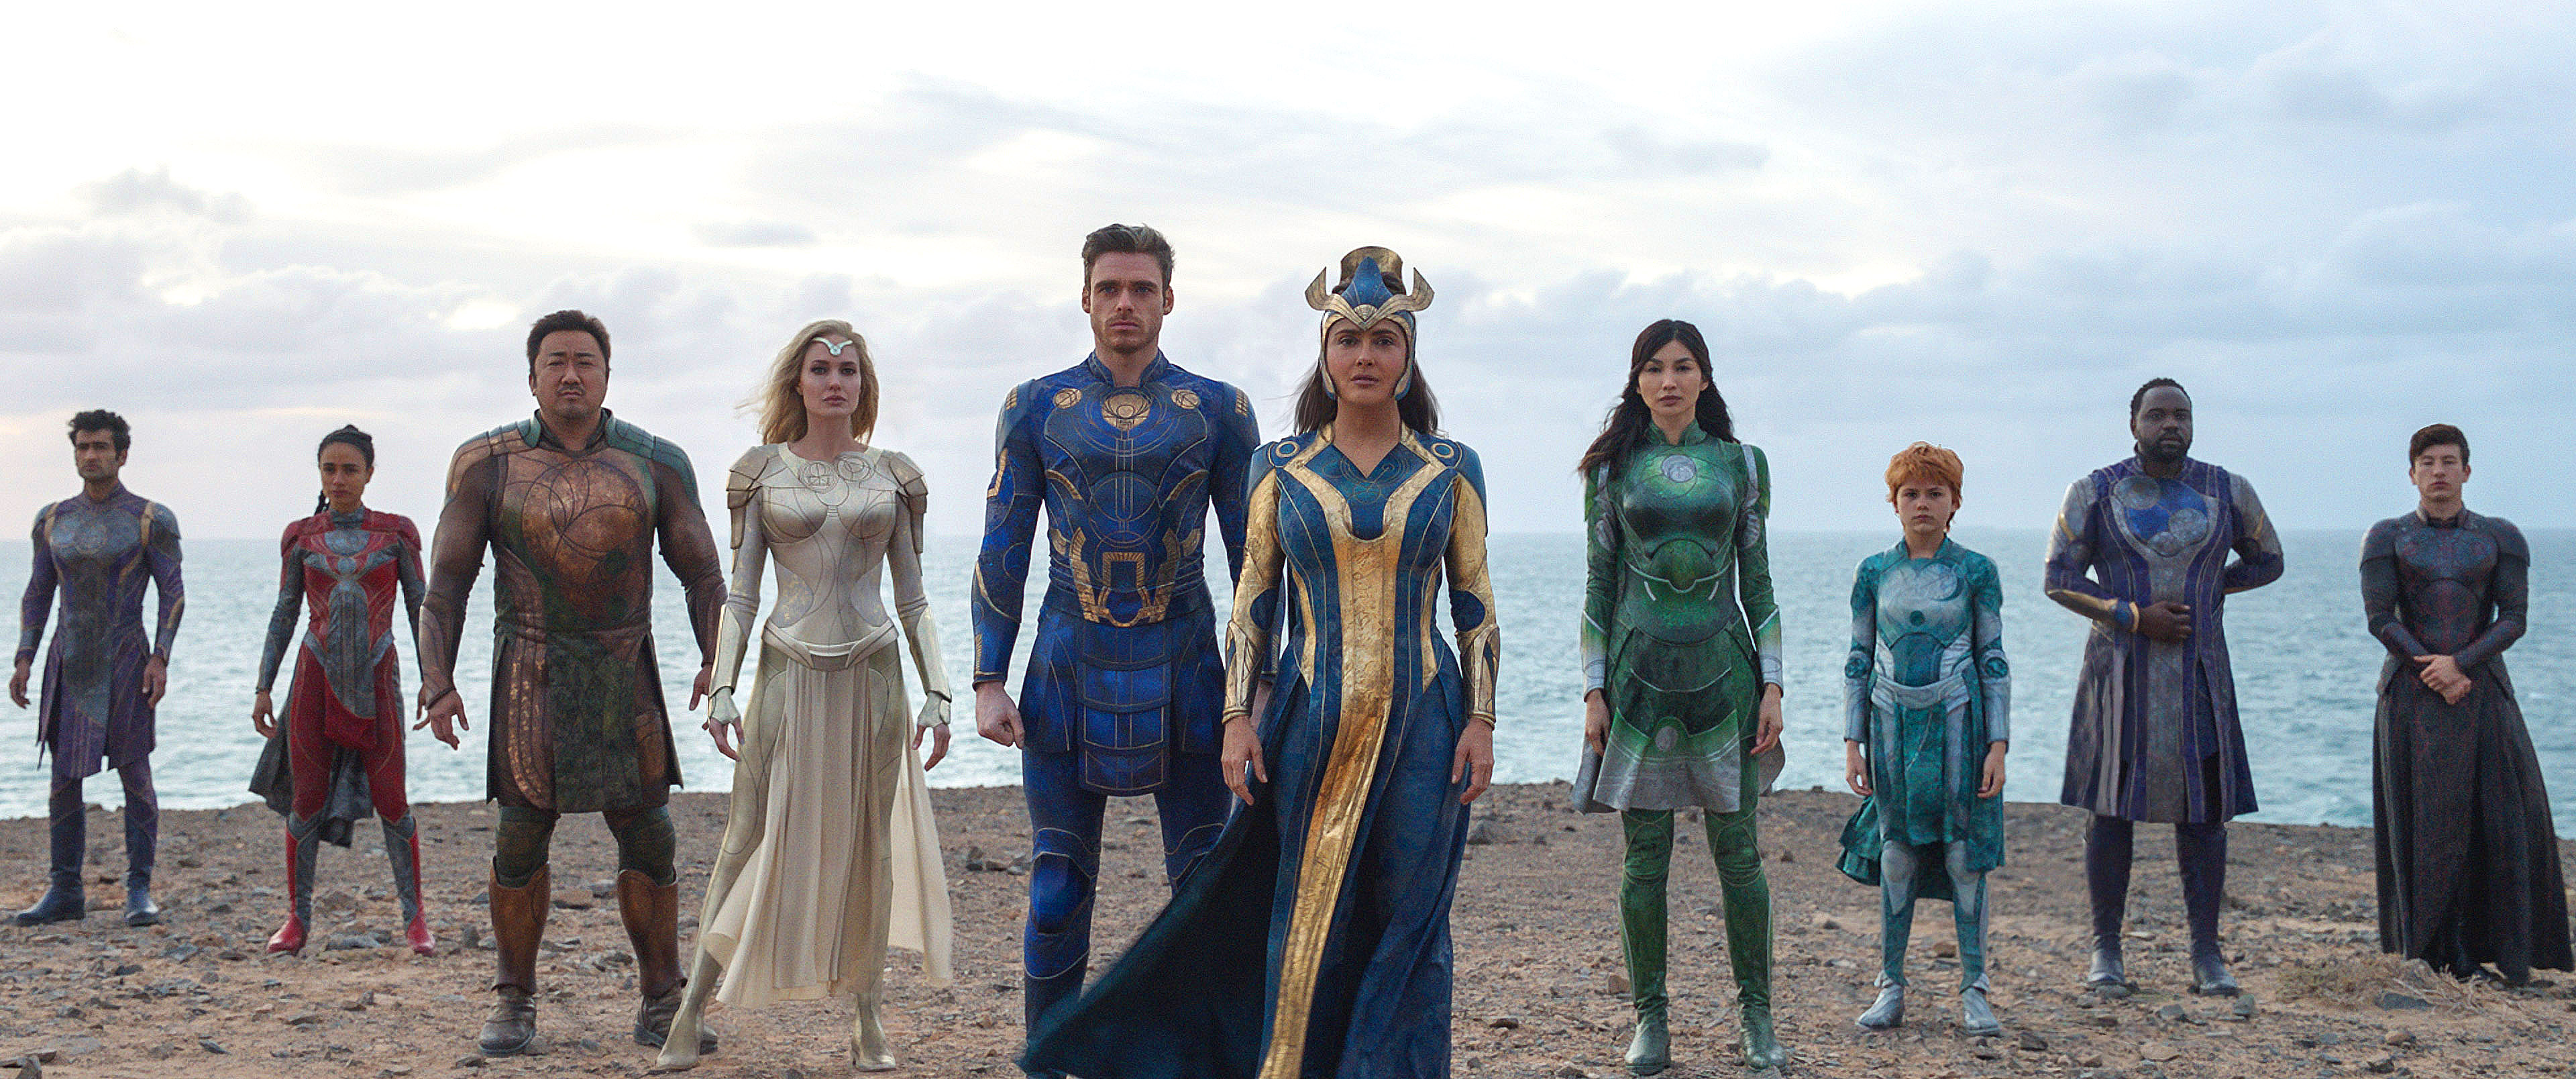 'Eternals' review: Chloe Zhao's fresh Marvel epic turns stale